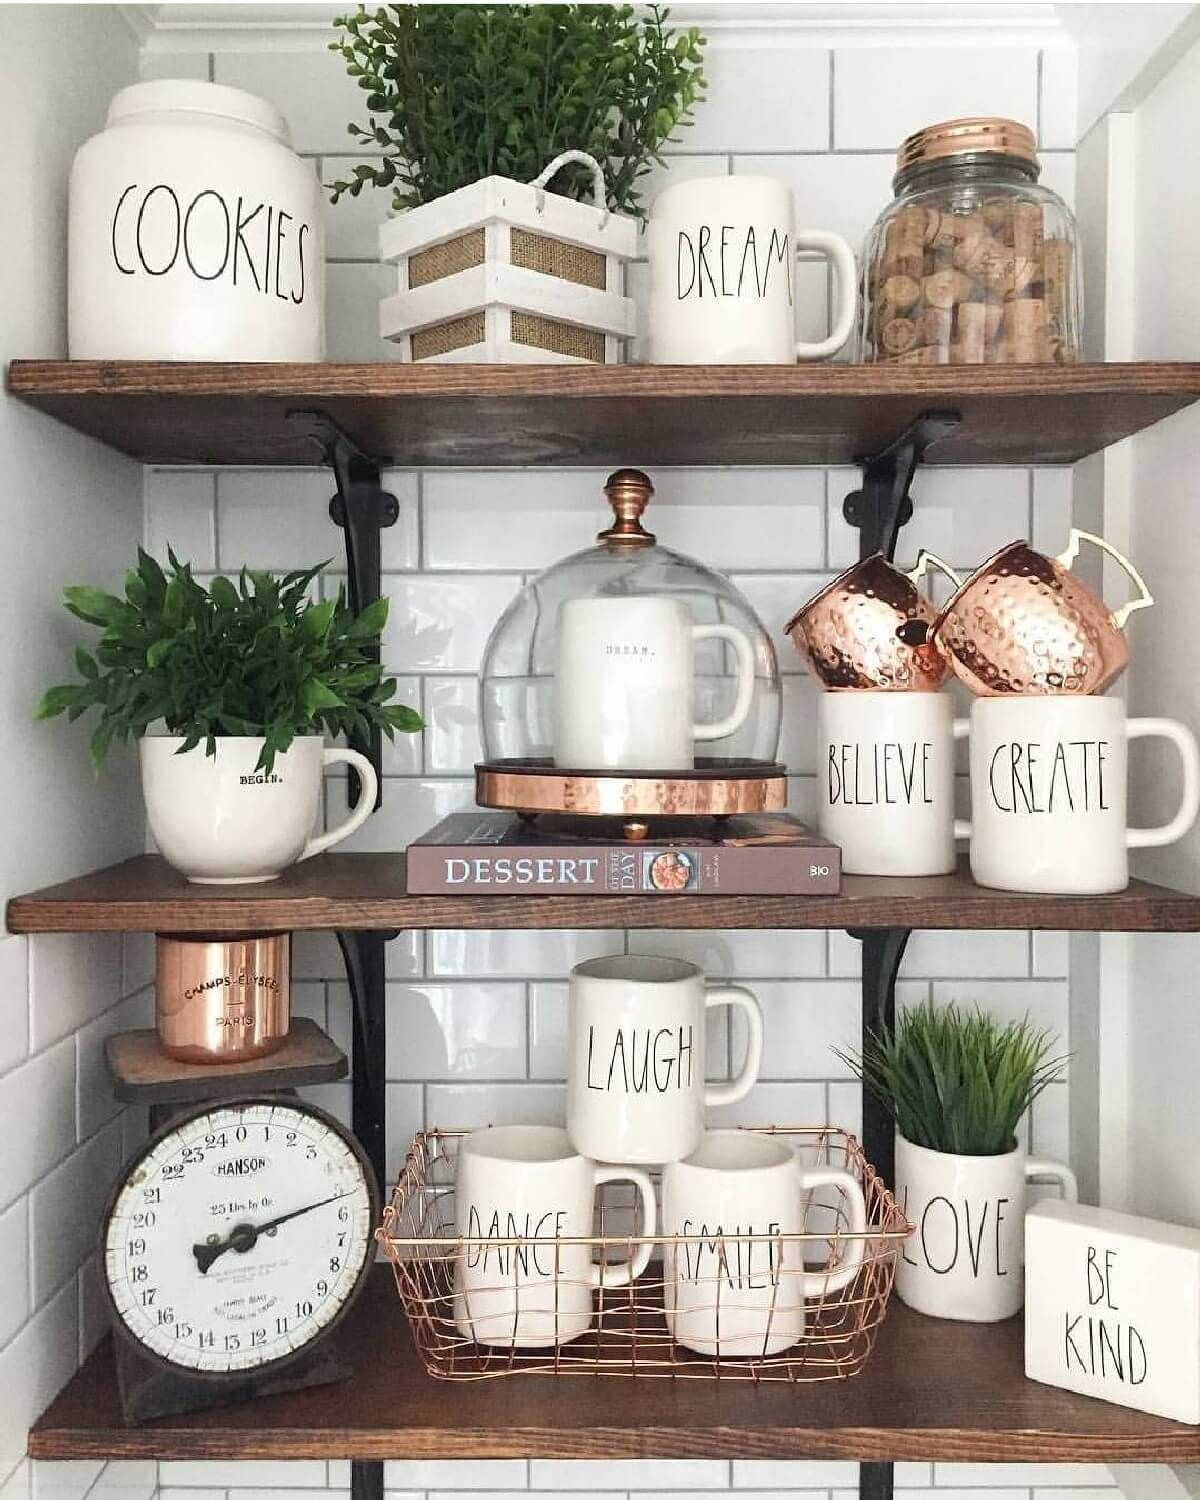 10 Farmhouse Shelf Decor Ideas that are both Functional and